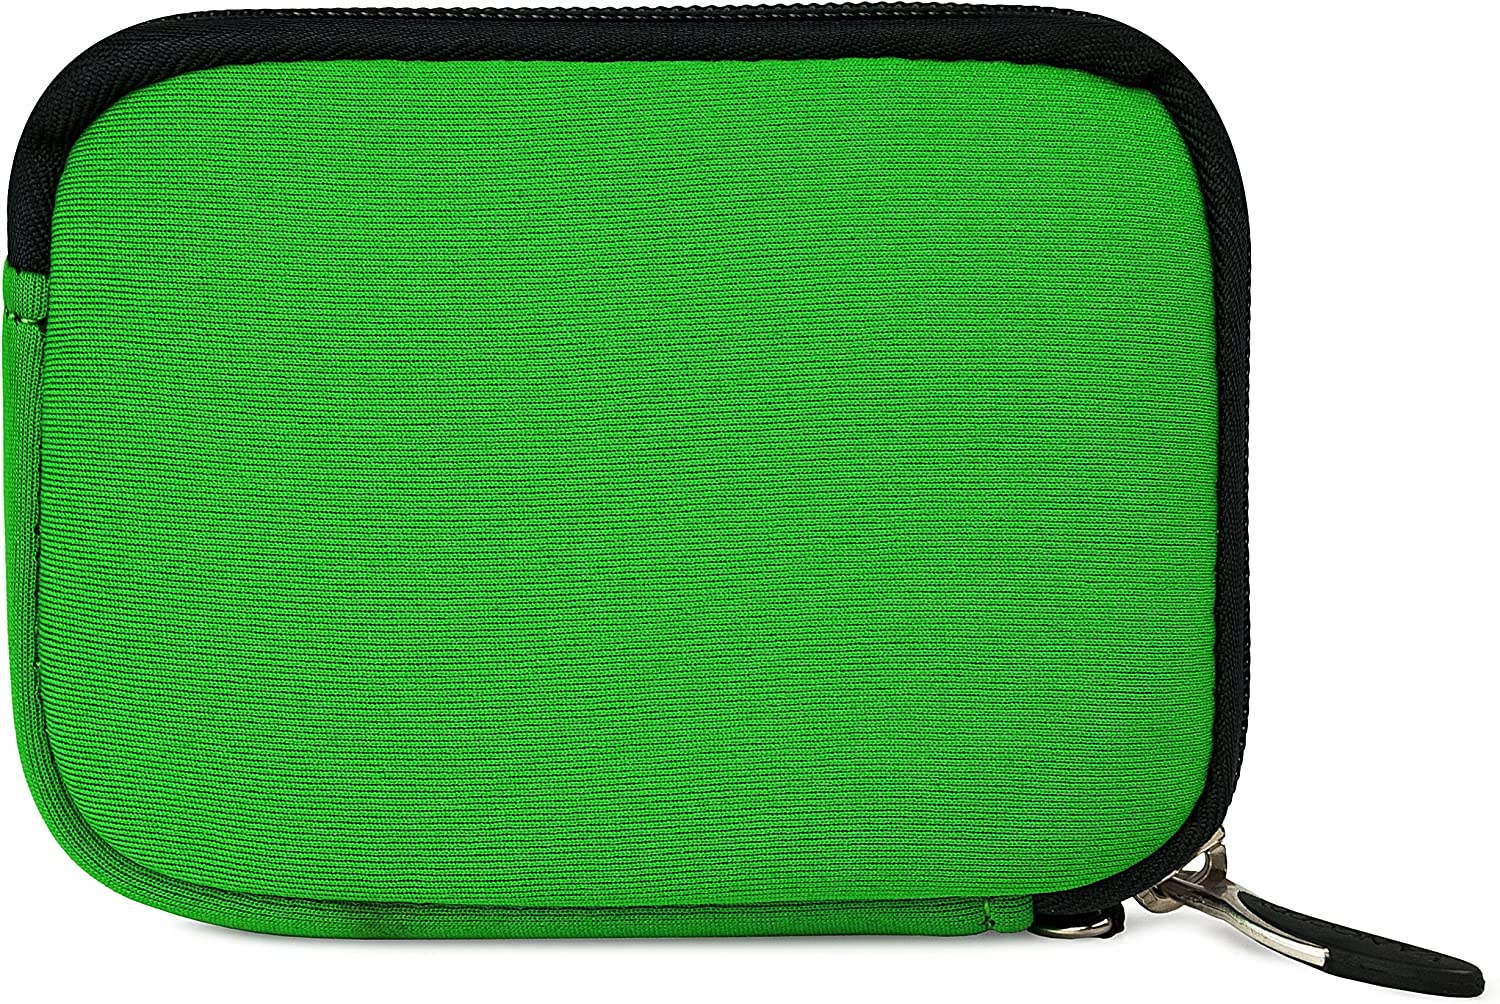 Green Black Trim Digital Cameras Typ112 and Screen Protector and Mini Tripod Stand VanGoddy Mini Glove Sleeve Pouch Case for Leica C LUX 3 Leica C V Lux 20